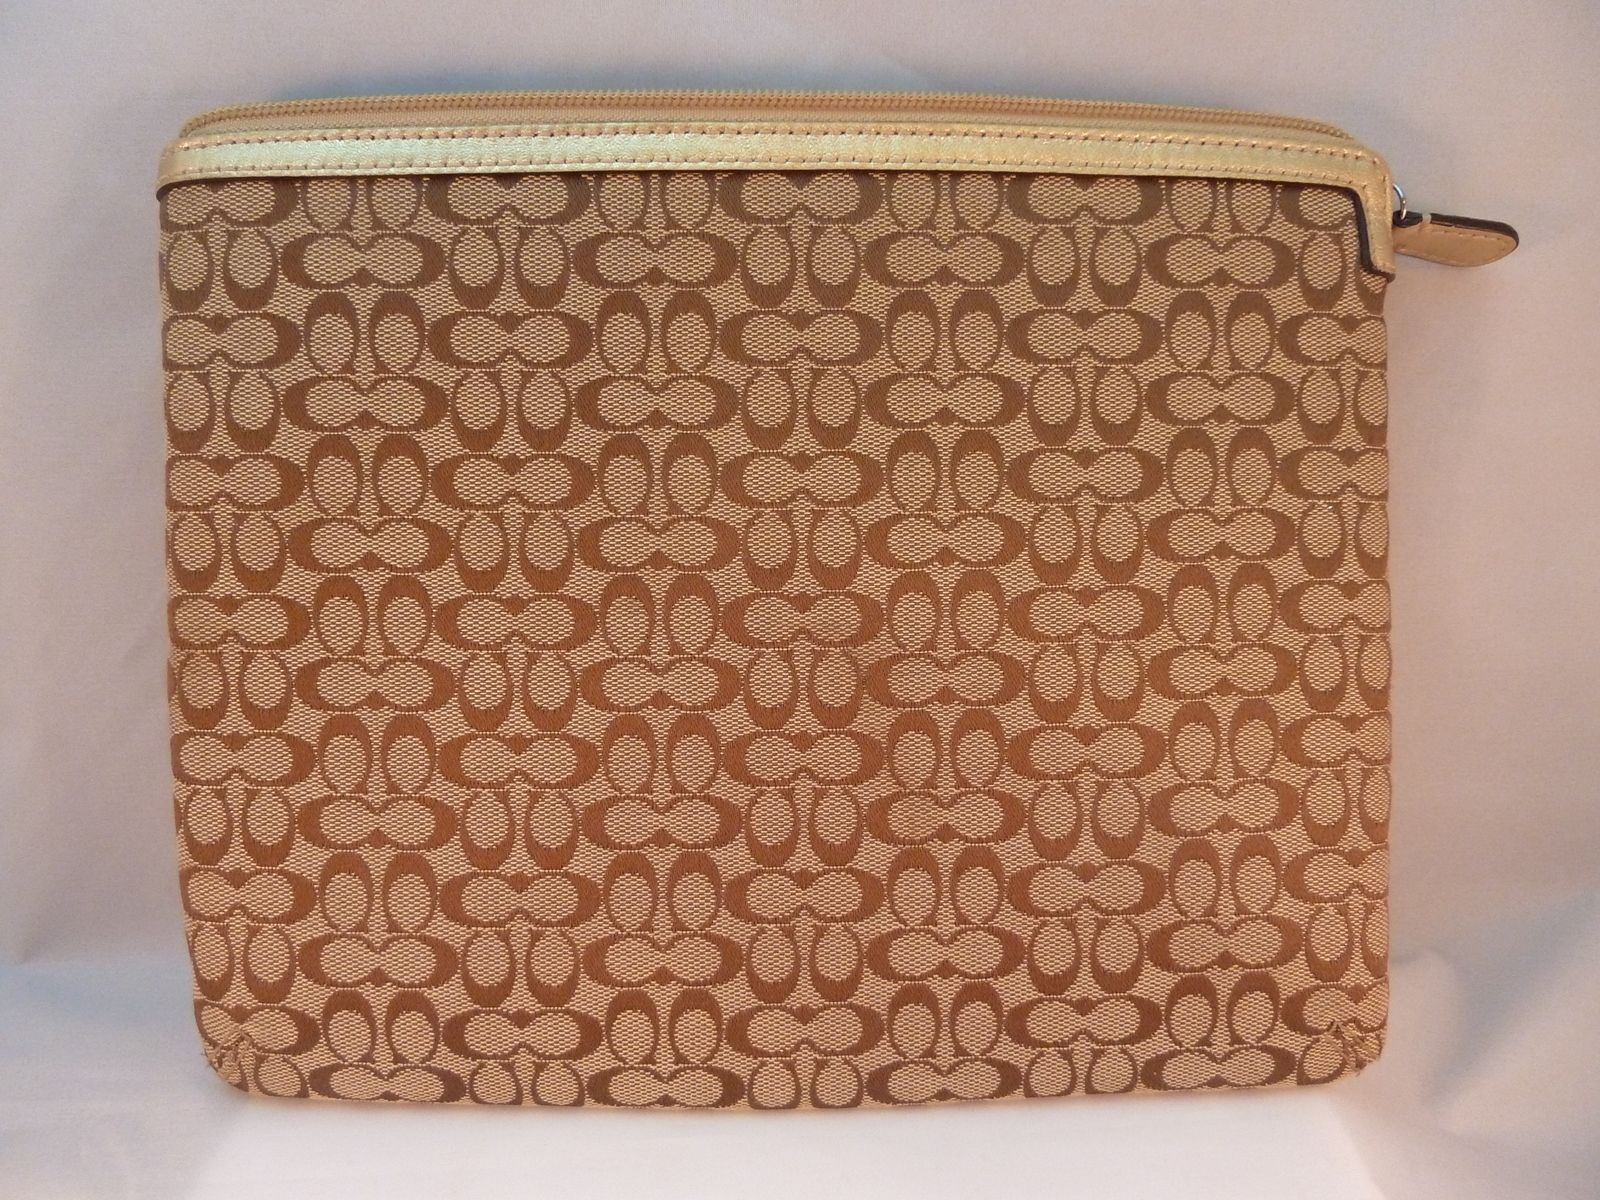 Coach iPad Tablet Zip Cover / Case / Sleeve 10.5 Inch Beige Jacquard C Design